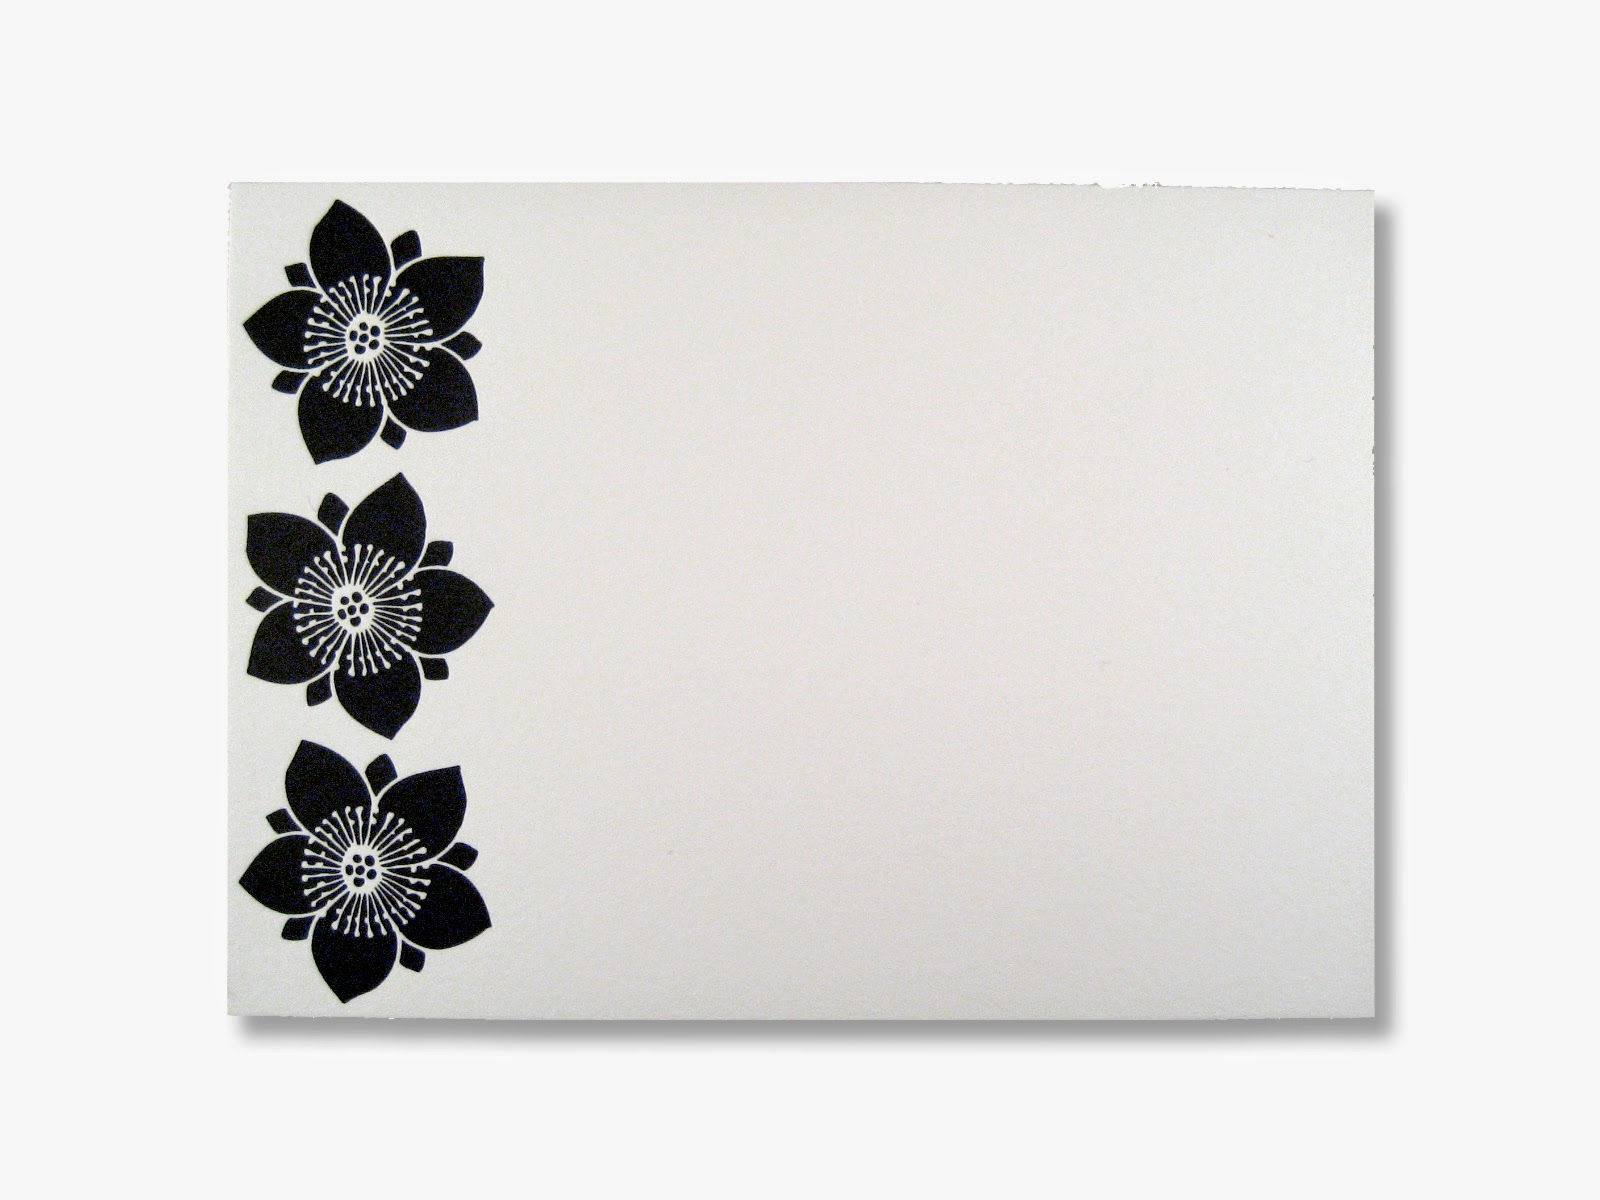 https://inviting.myshopify.com/collections/stationery/products/3-flowers-stationery